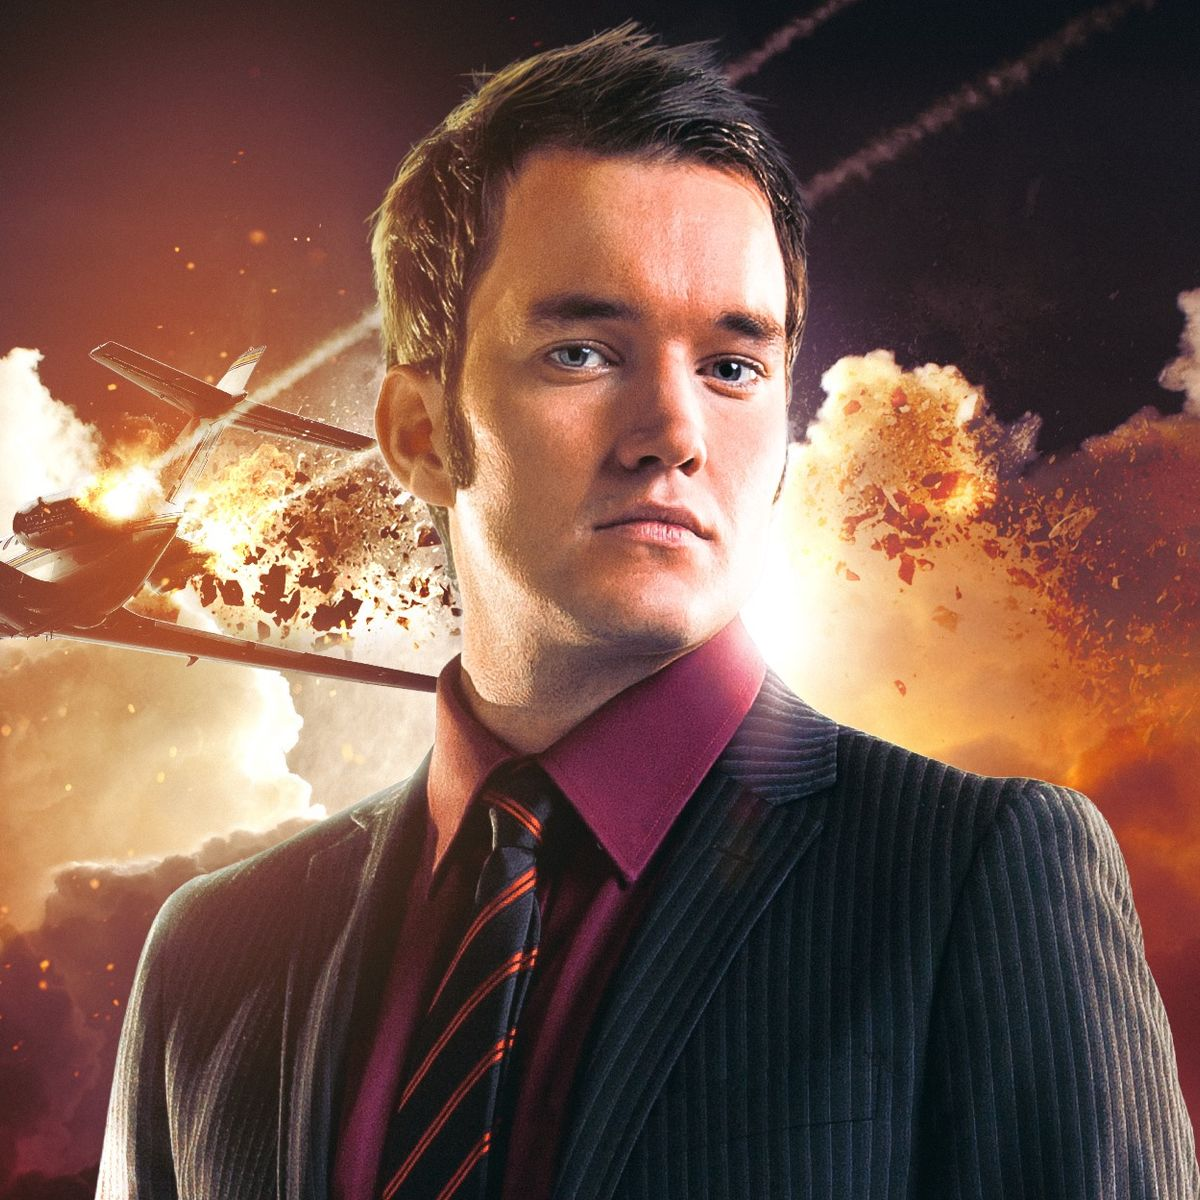 Torchwood-Fall-to-Earth-Ianto-Jones-2.jpg